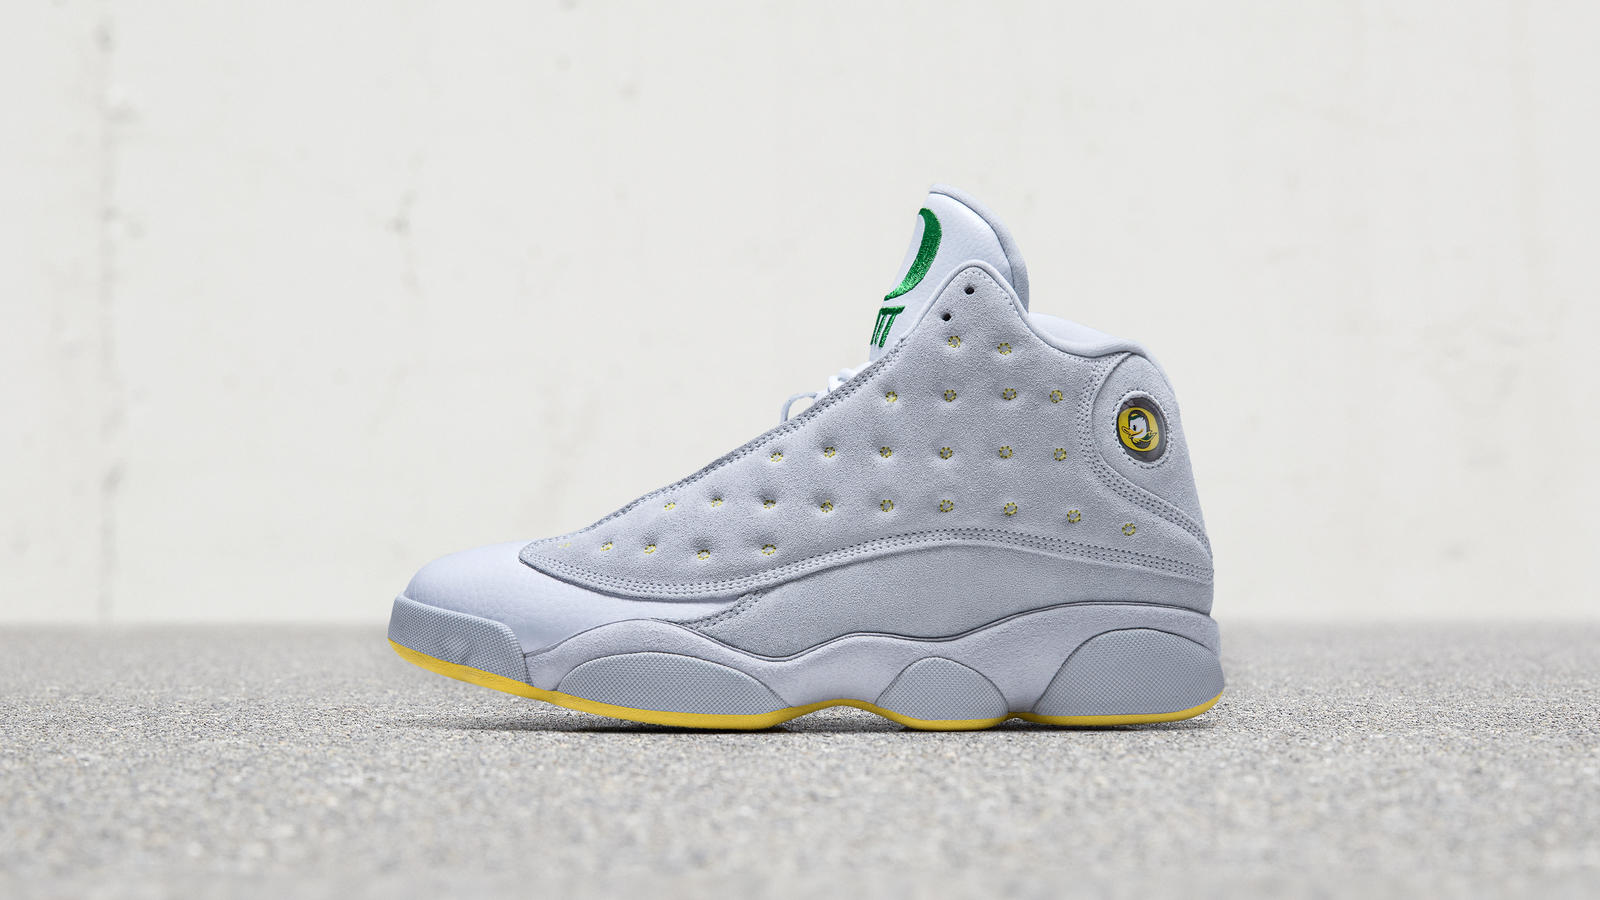 Air jordan 13 university of oregon basketball Matthew Knight 4